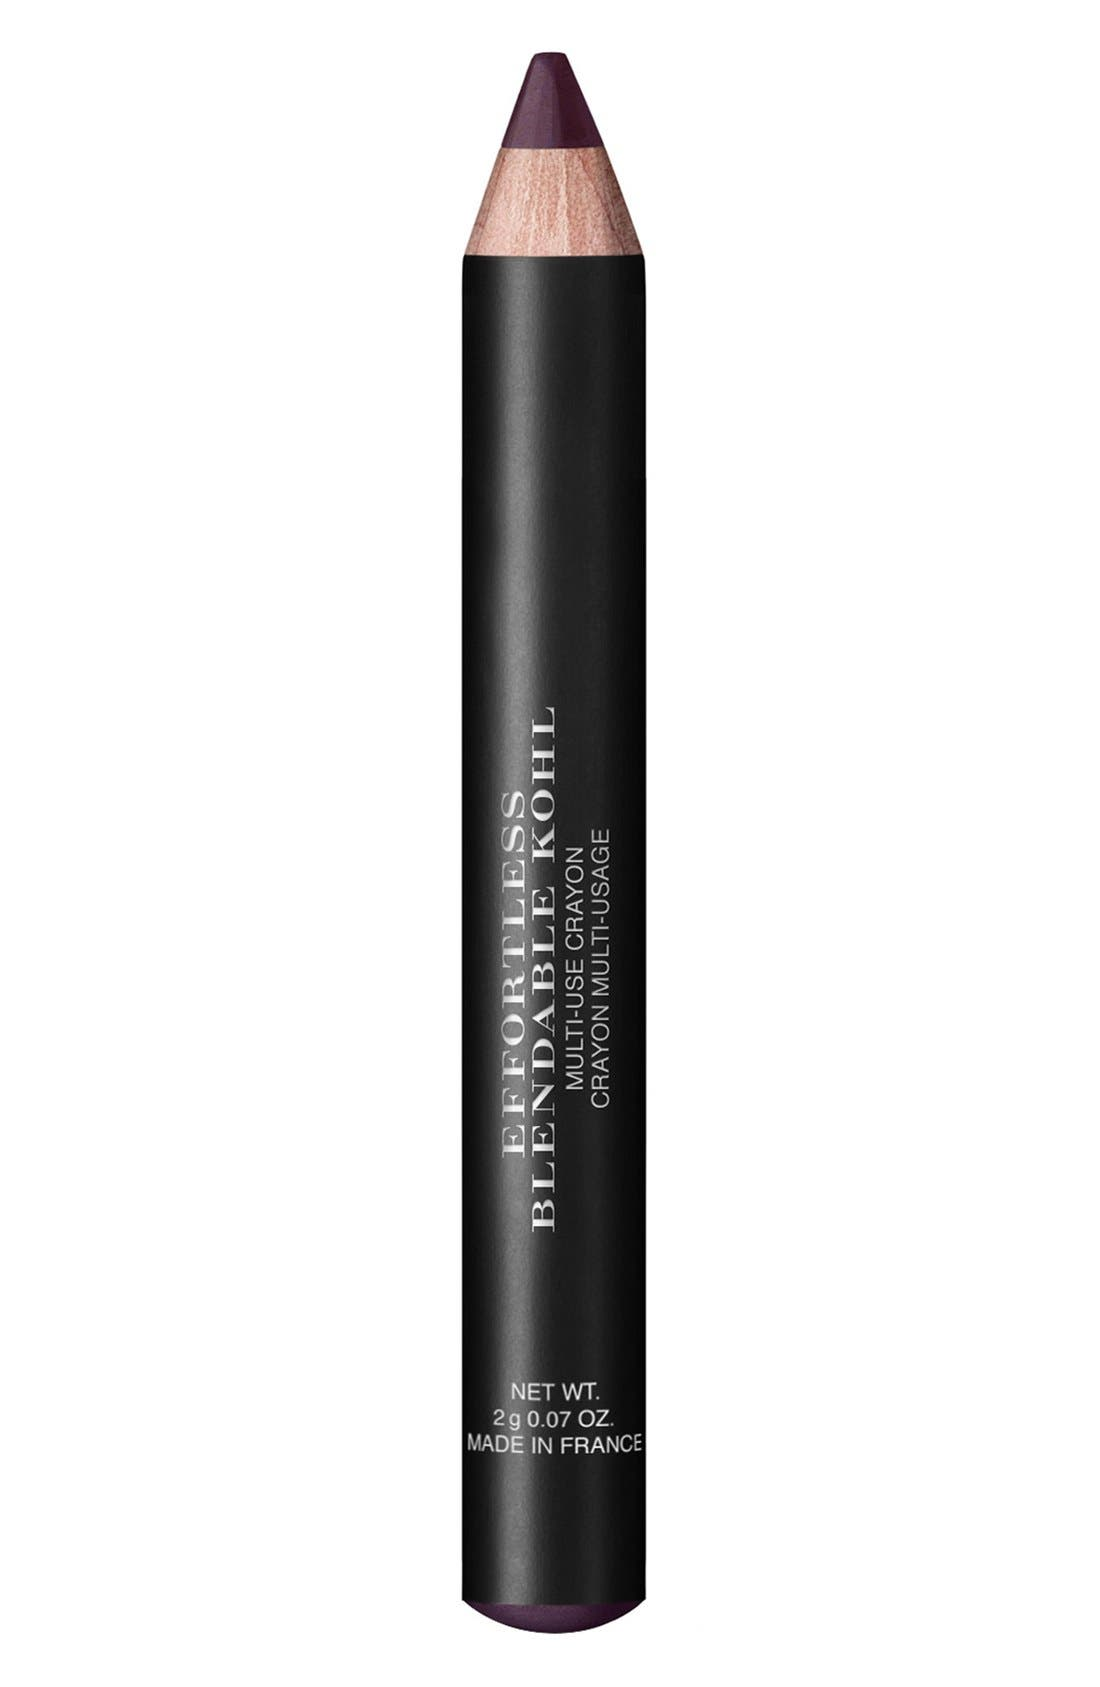 Burberry Beauty Effortless Blendable Kohl Multi-Use Pencil